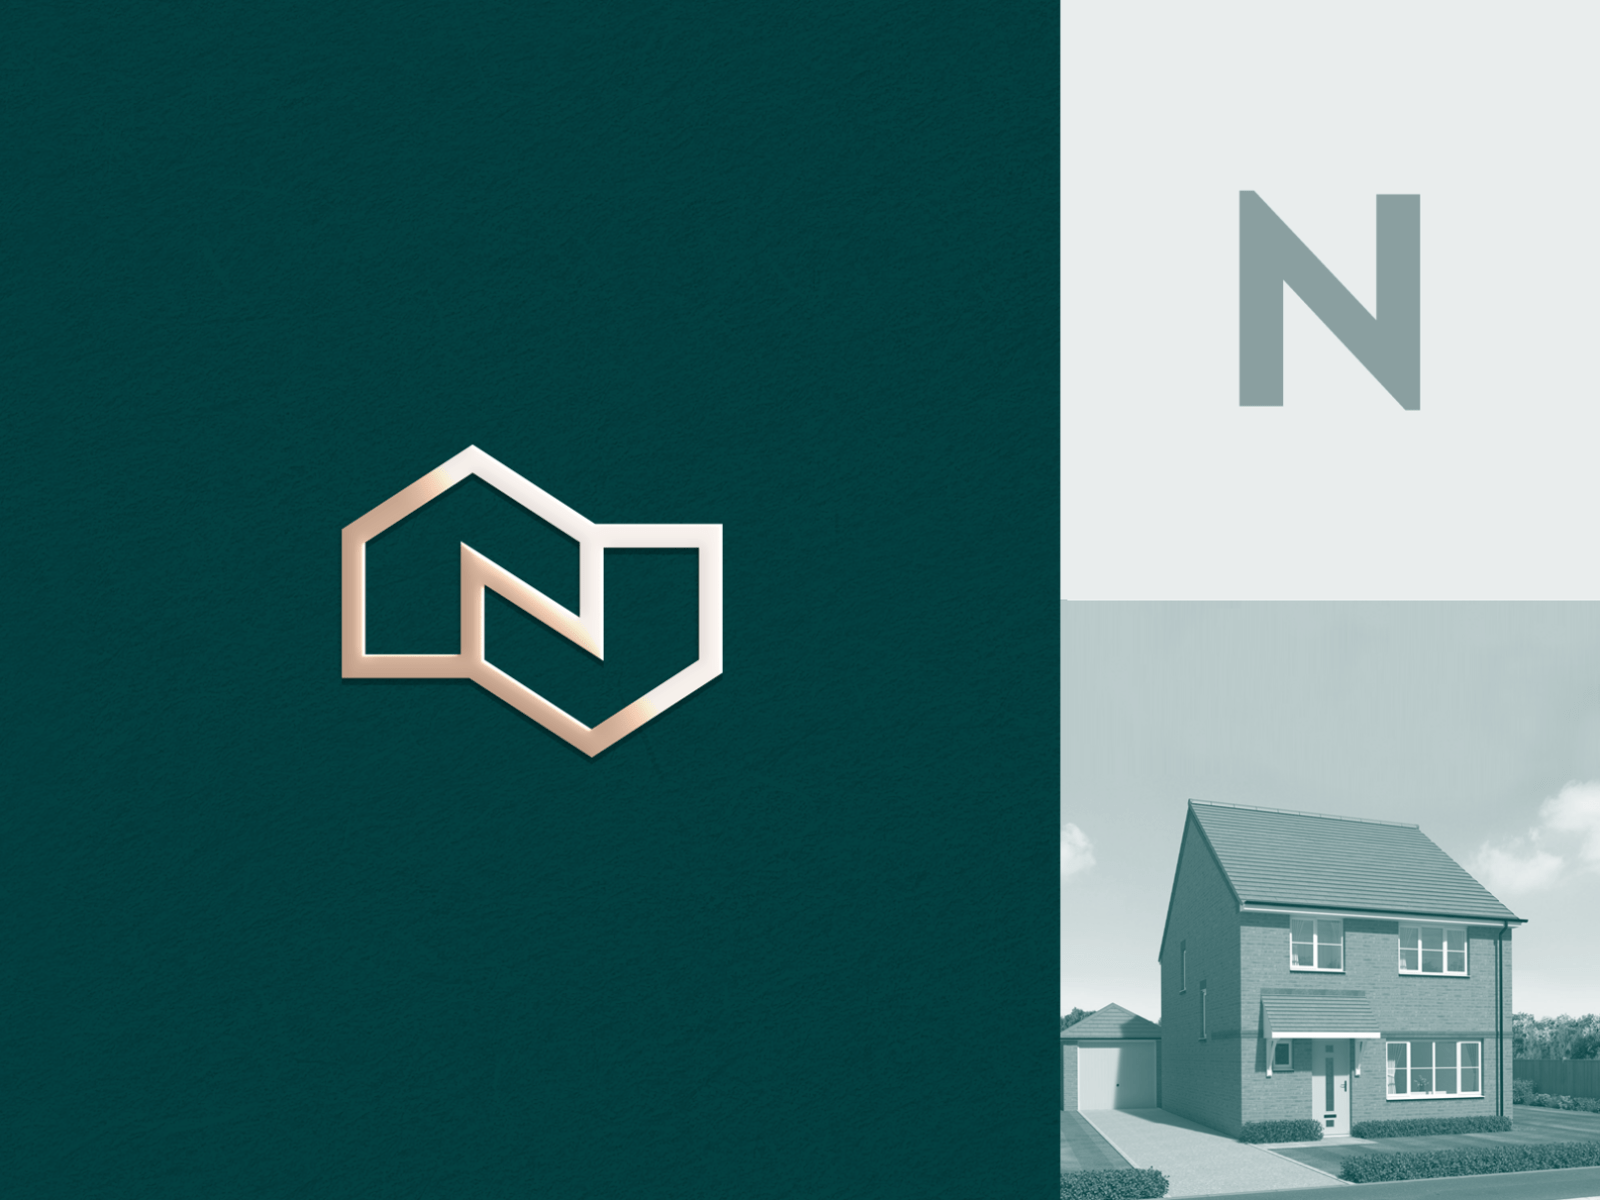 N + Home by Ahmed Creatives